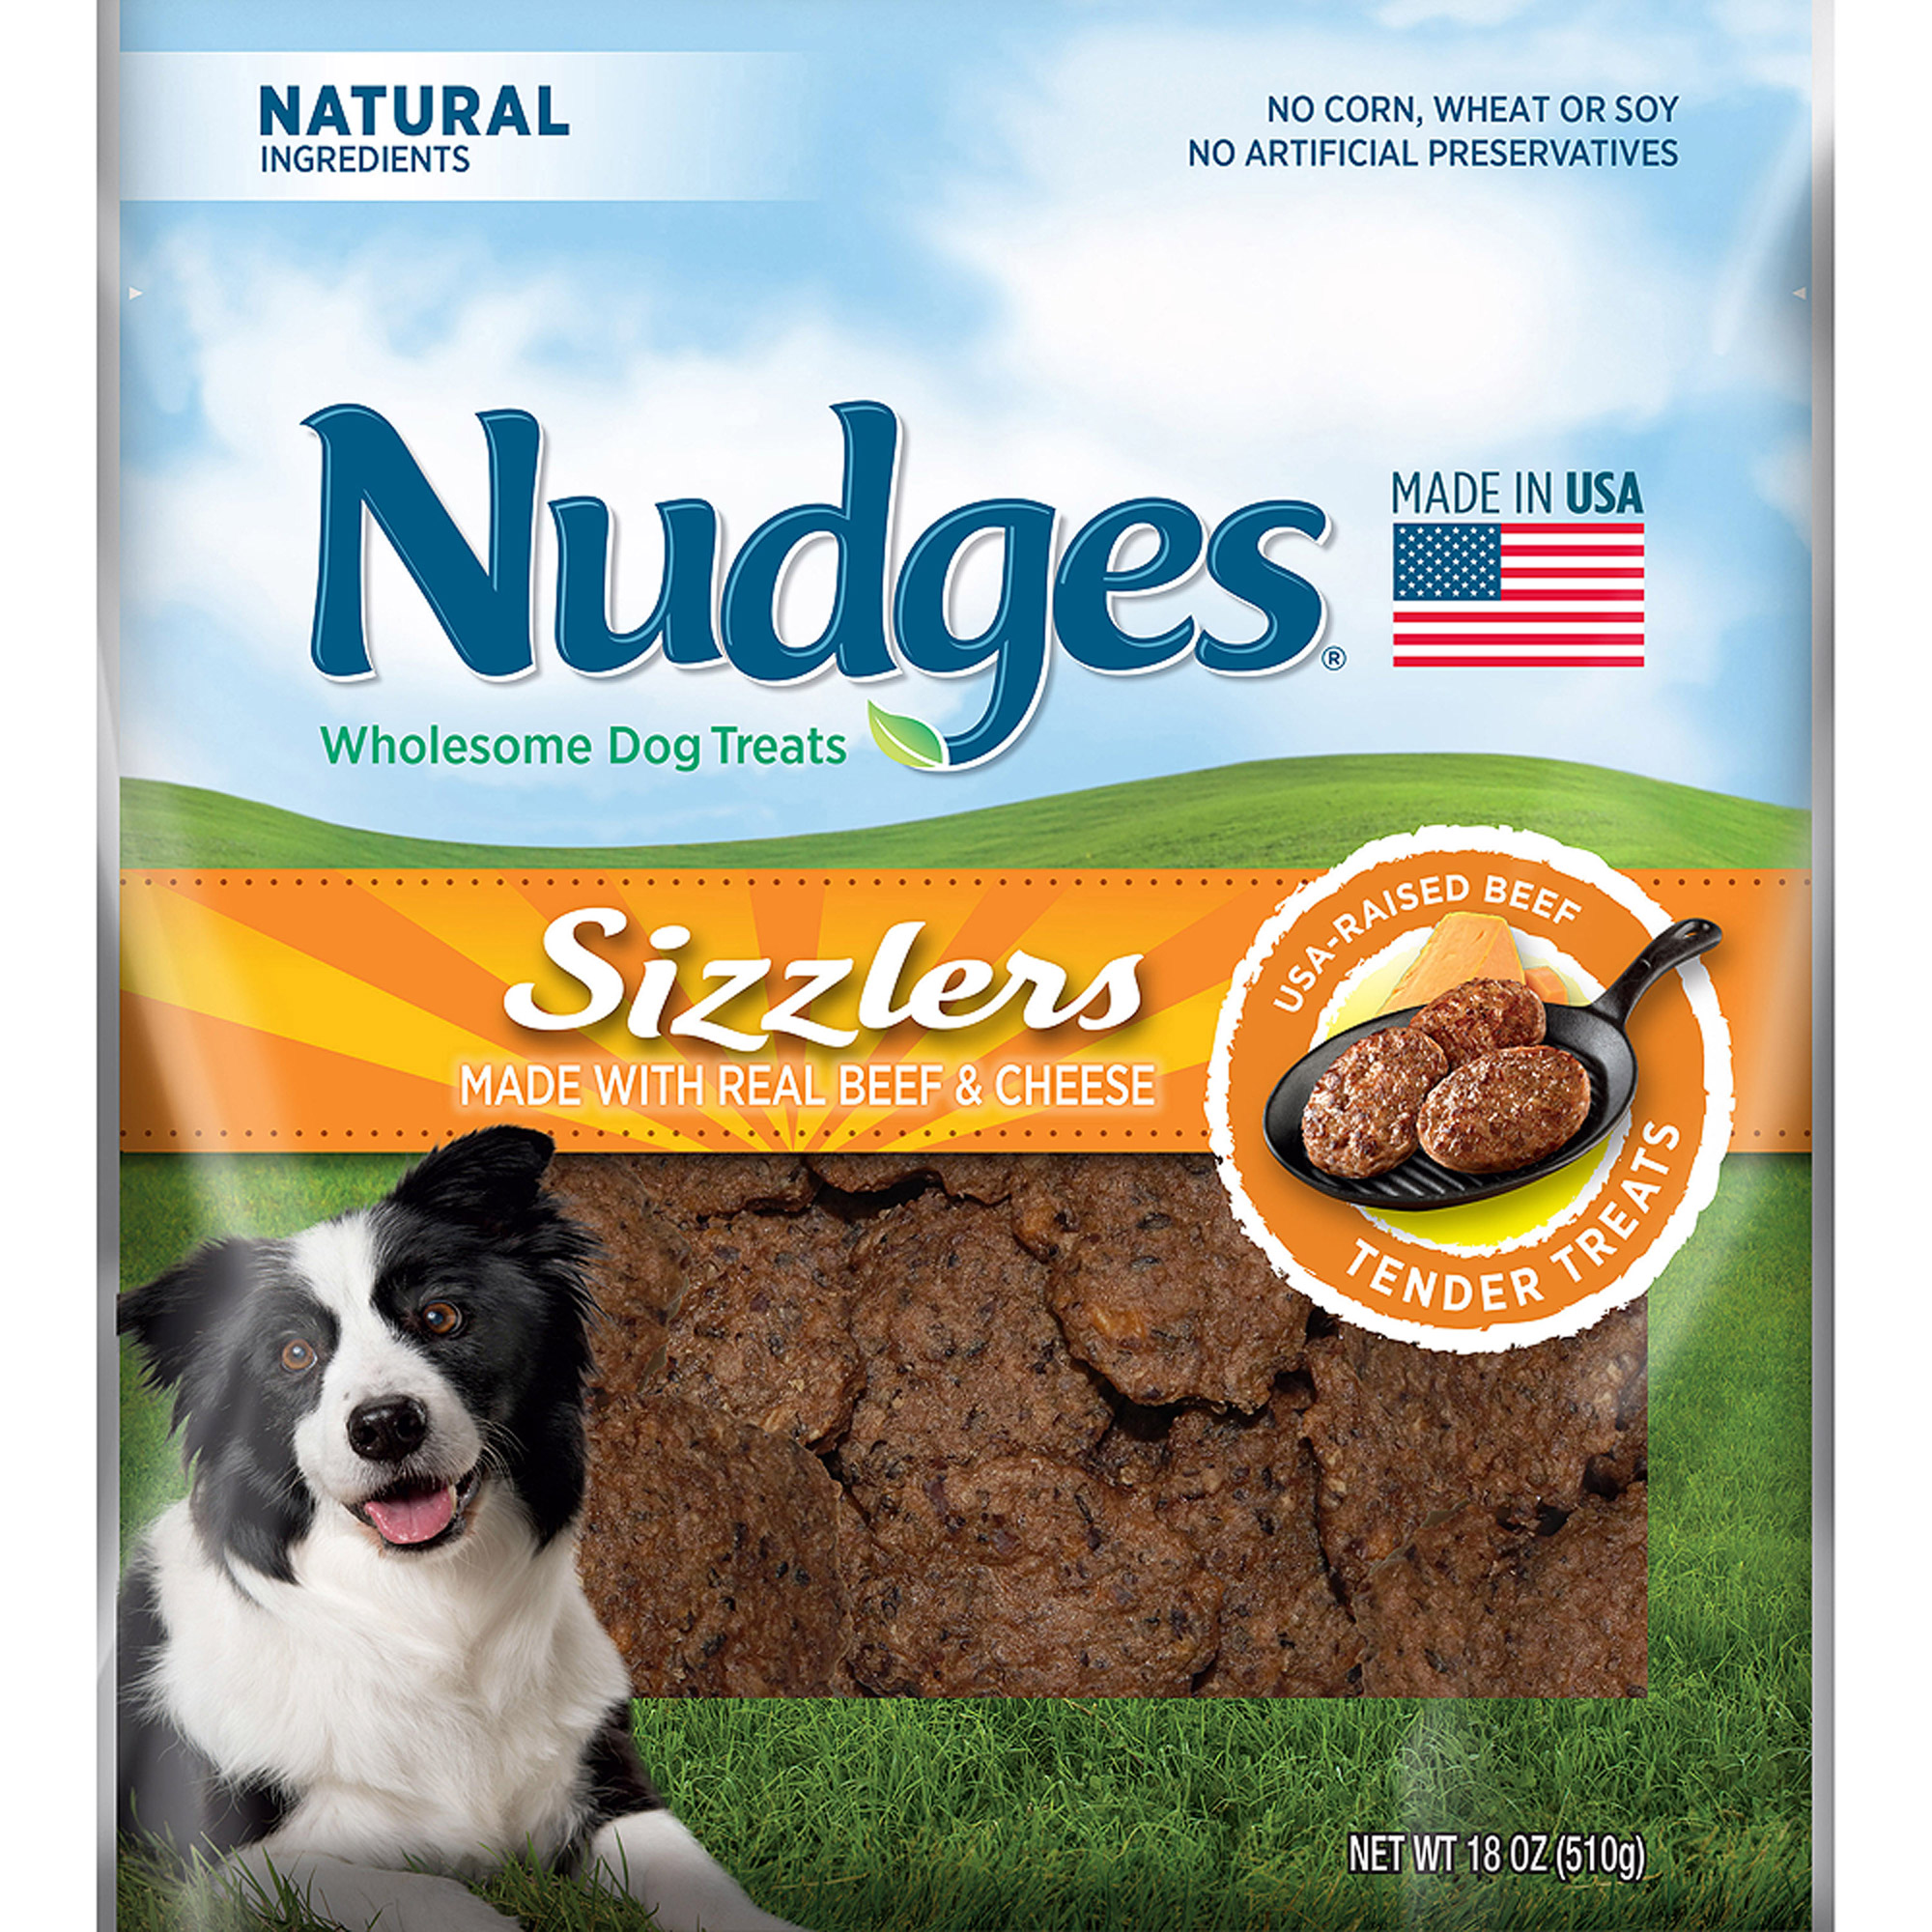 Nudges Beef & Cheese Sizzlers Wholesome Dog Treats 18 oz. Bag